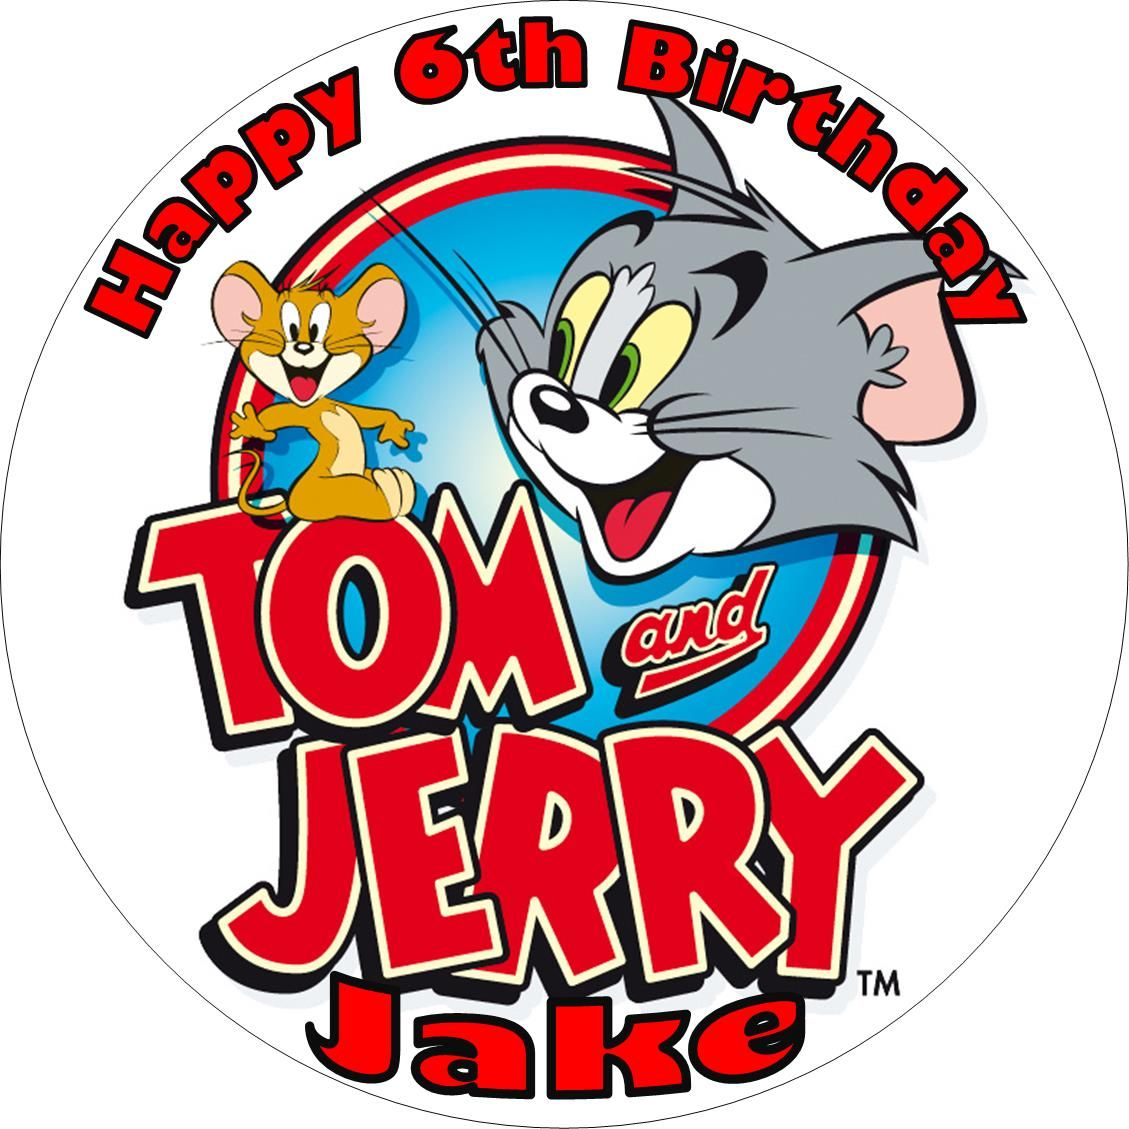 Tom jerry cake toppers